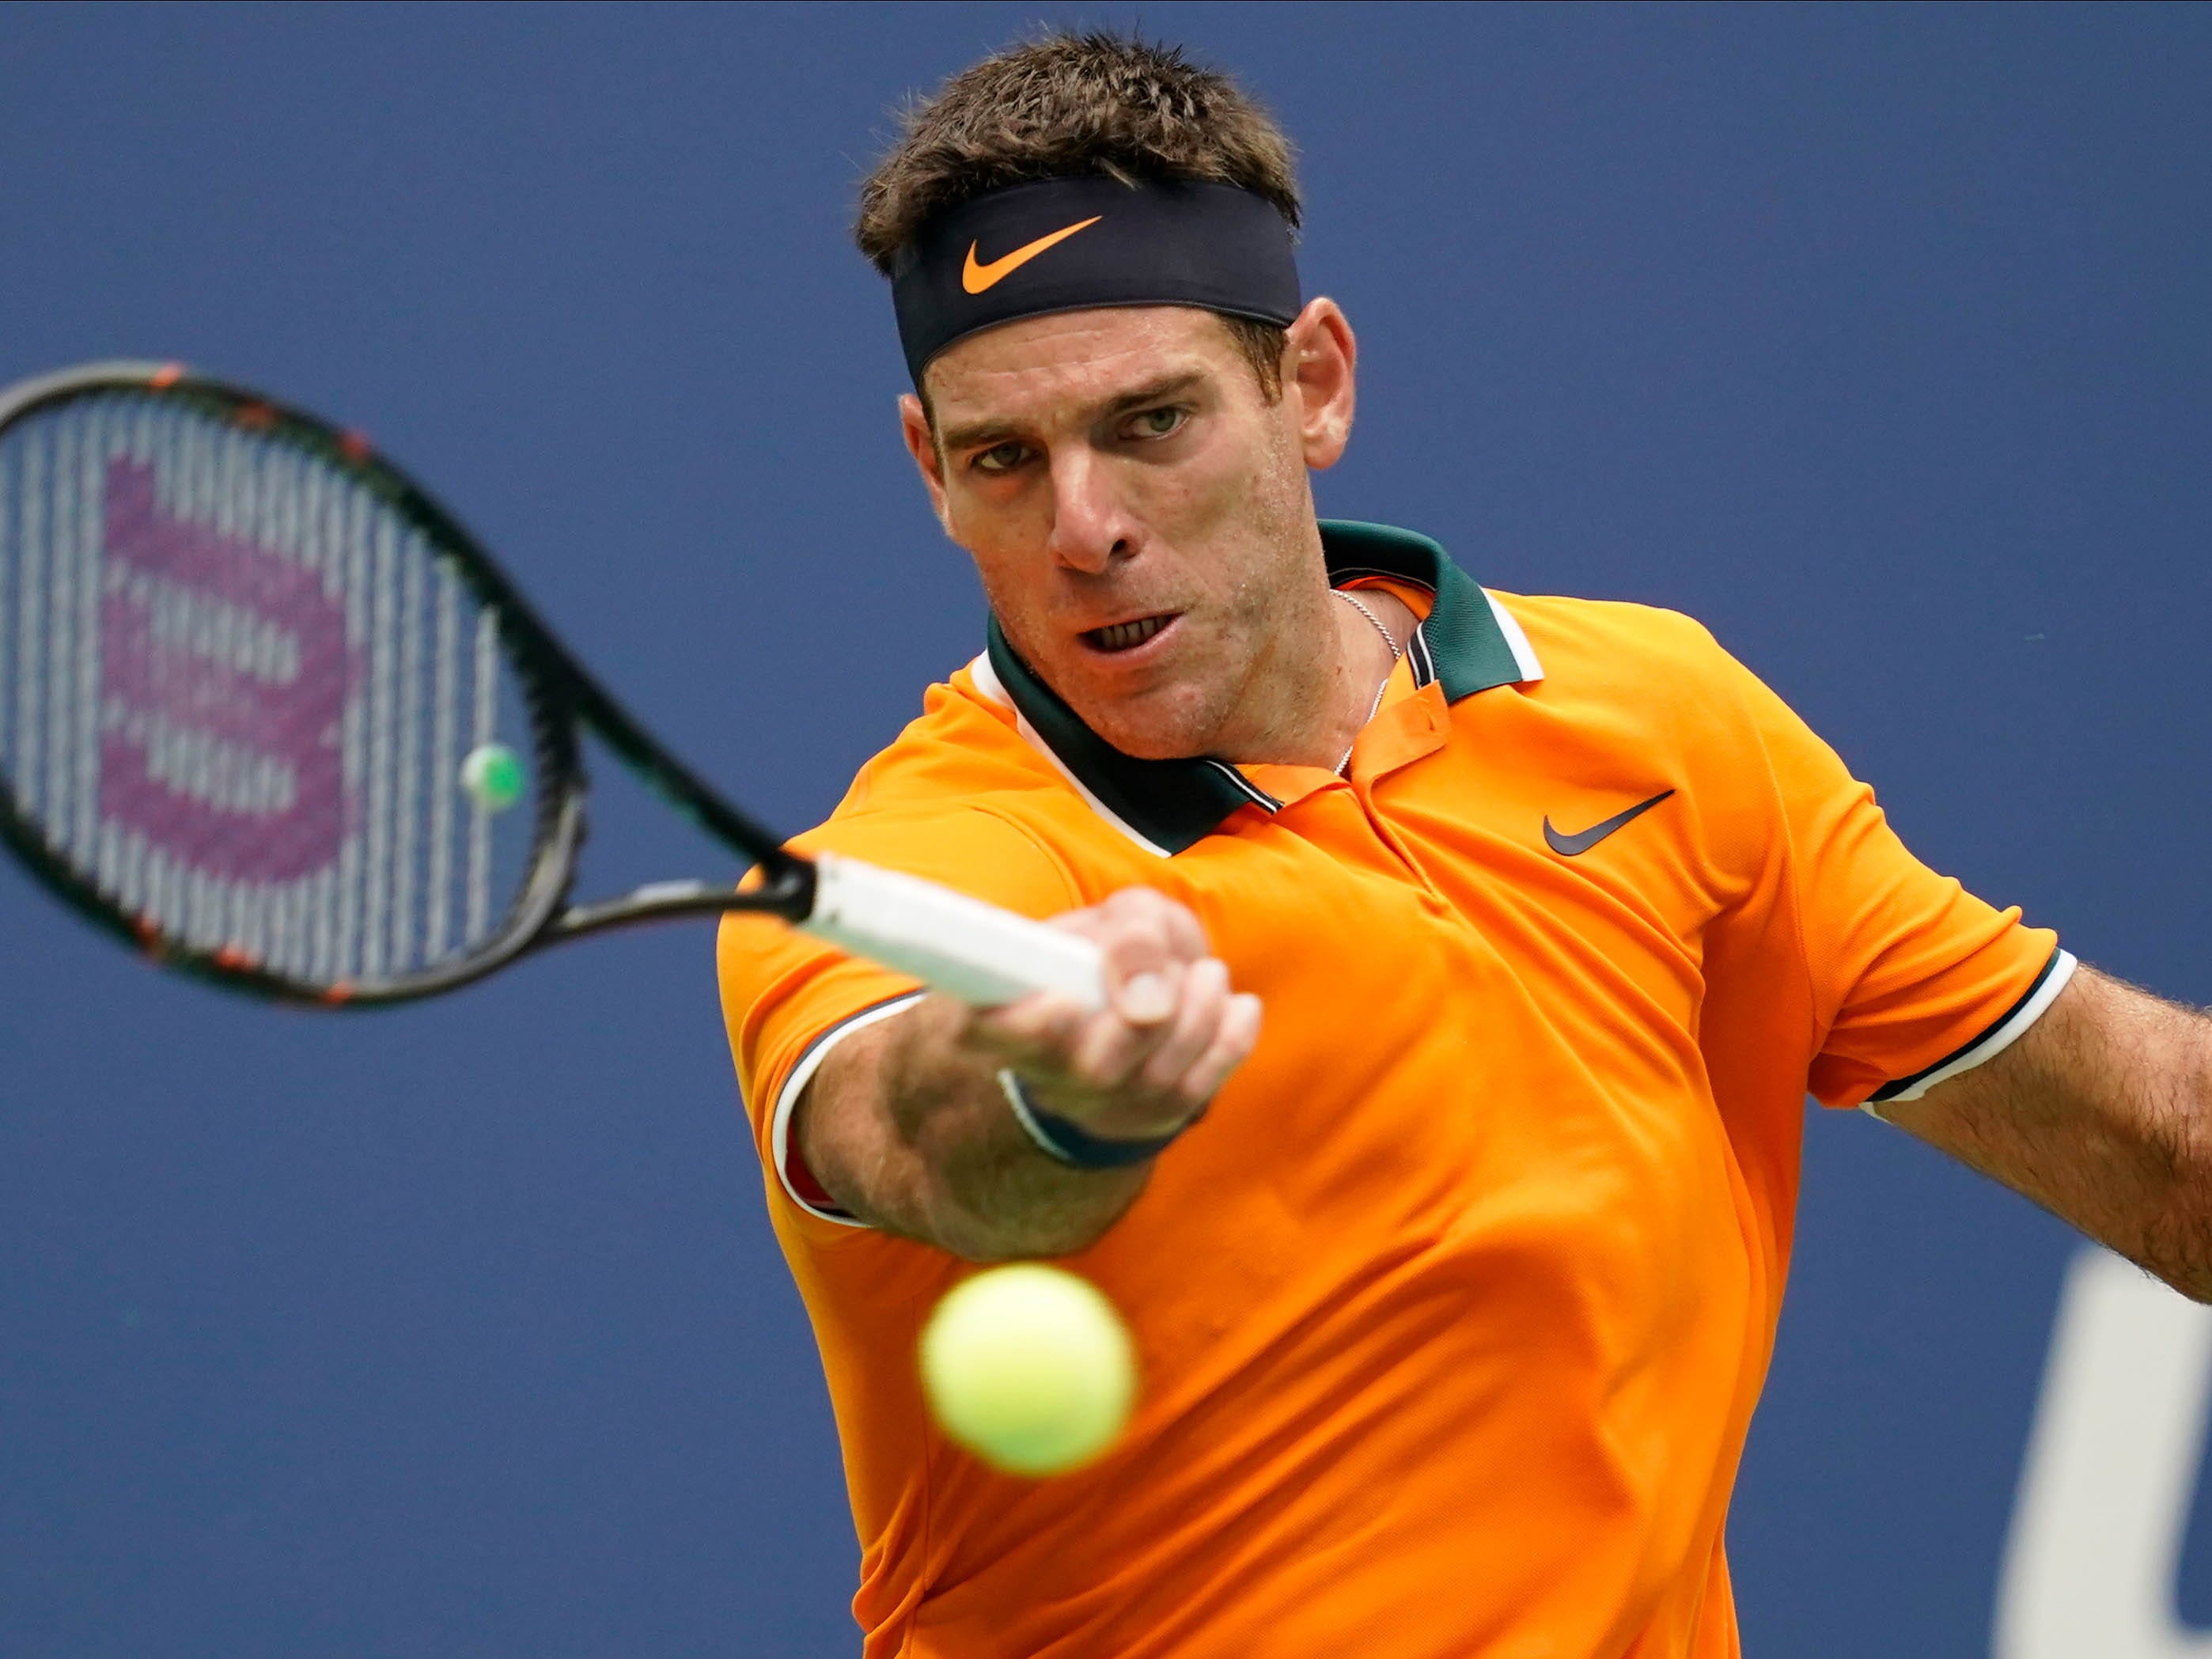 Juan Martin del Potro of Argentina hits to Rafael Nadal of Spain in the semifinal.